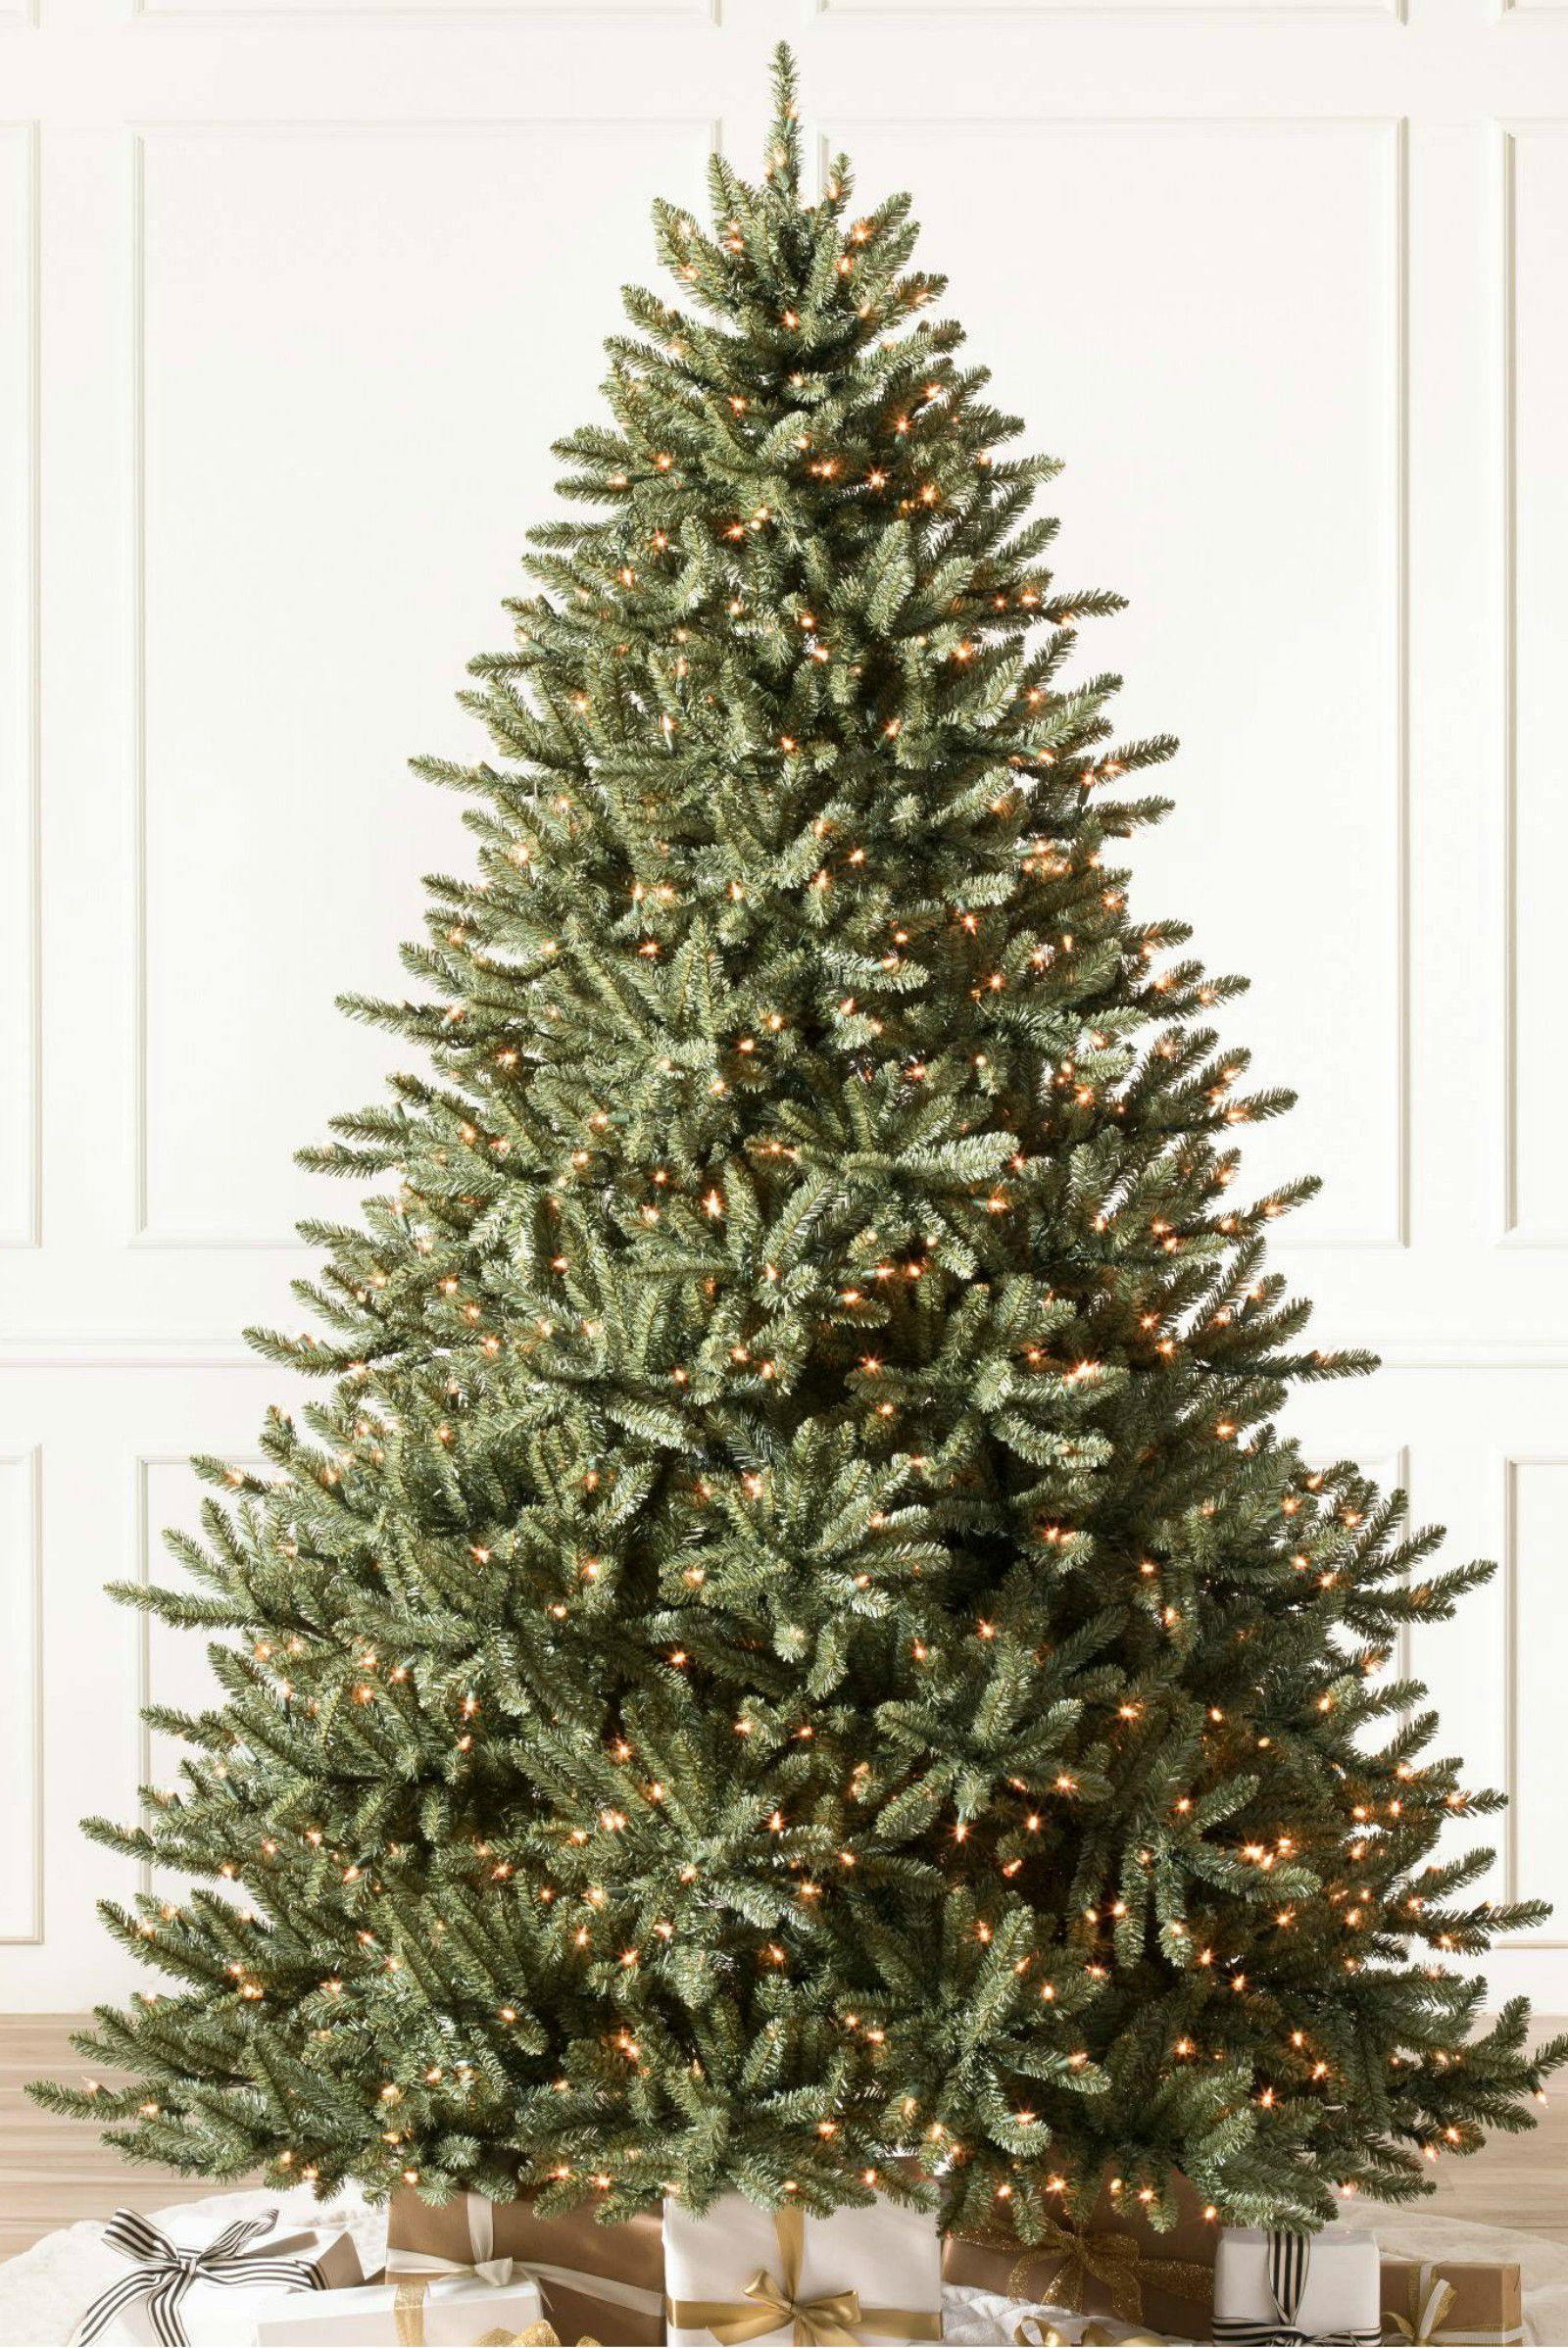 Fake Christmas Tree.Blue Spruce Artificial Christmas Tree